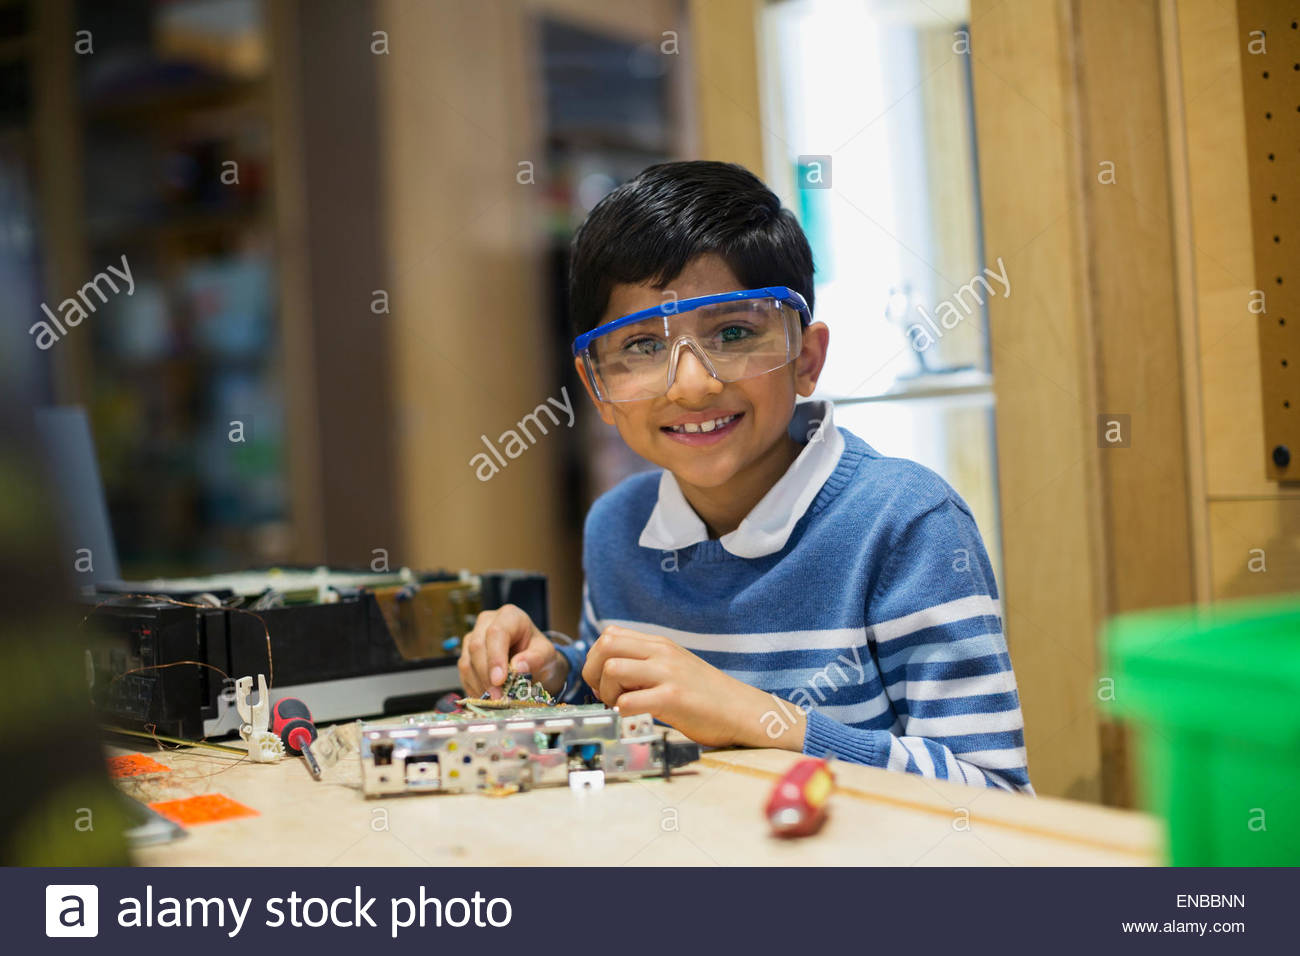 Portrait of smiling boy assembling electronics science center - Stock Image